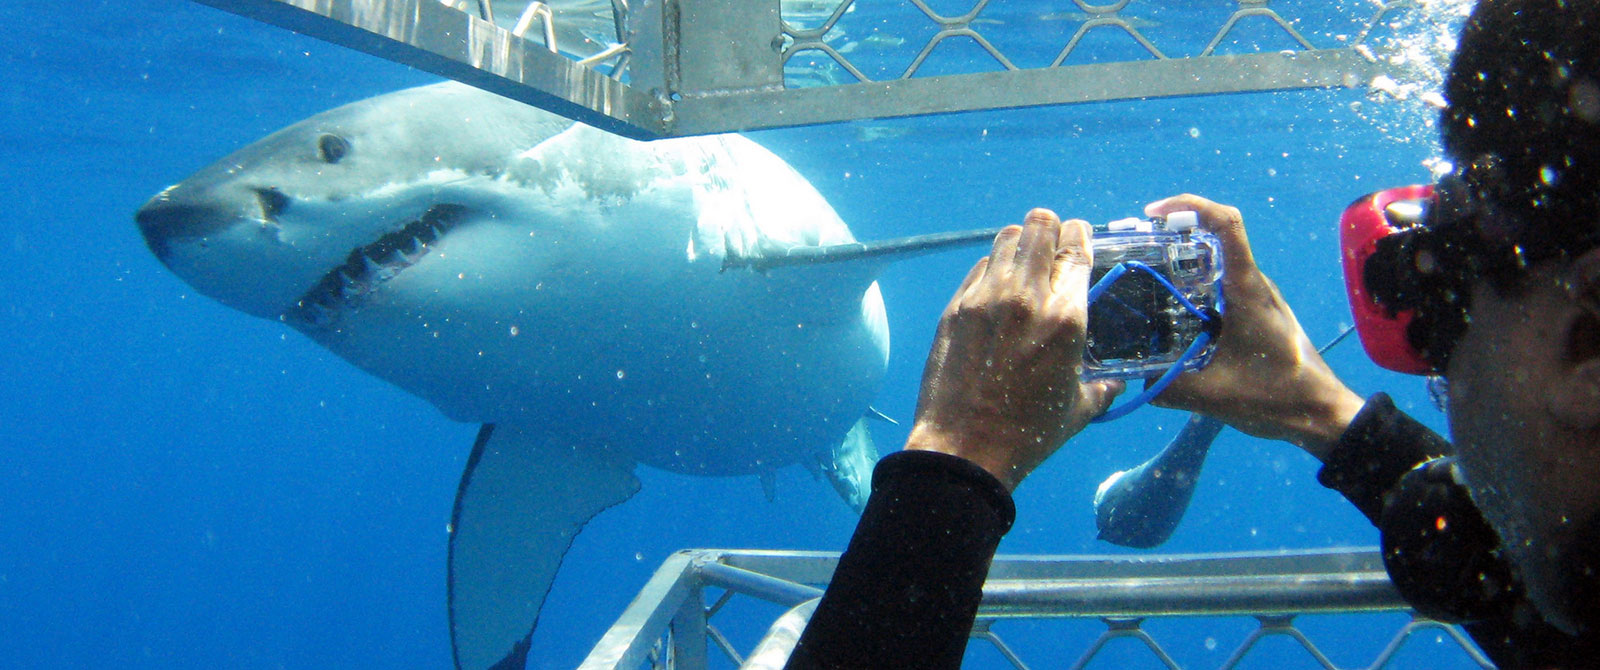 Wildlife Adventure Australia - Kangaroo Island Vacations - Great White Shark Cage Diving in Port Lincoln Australia